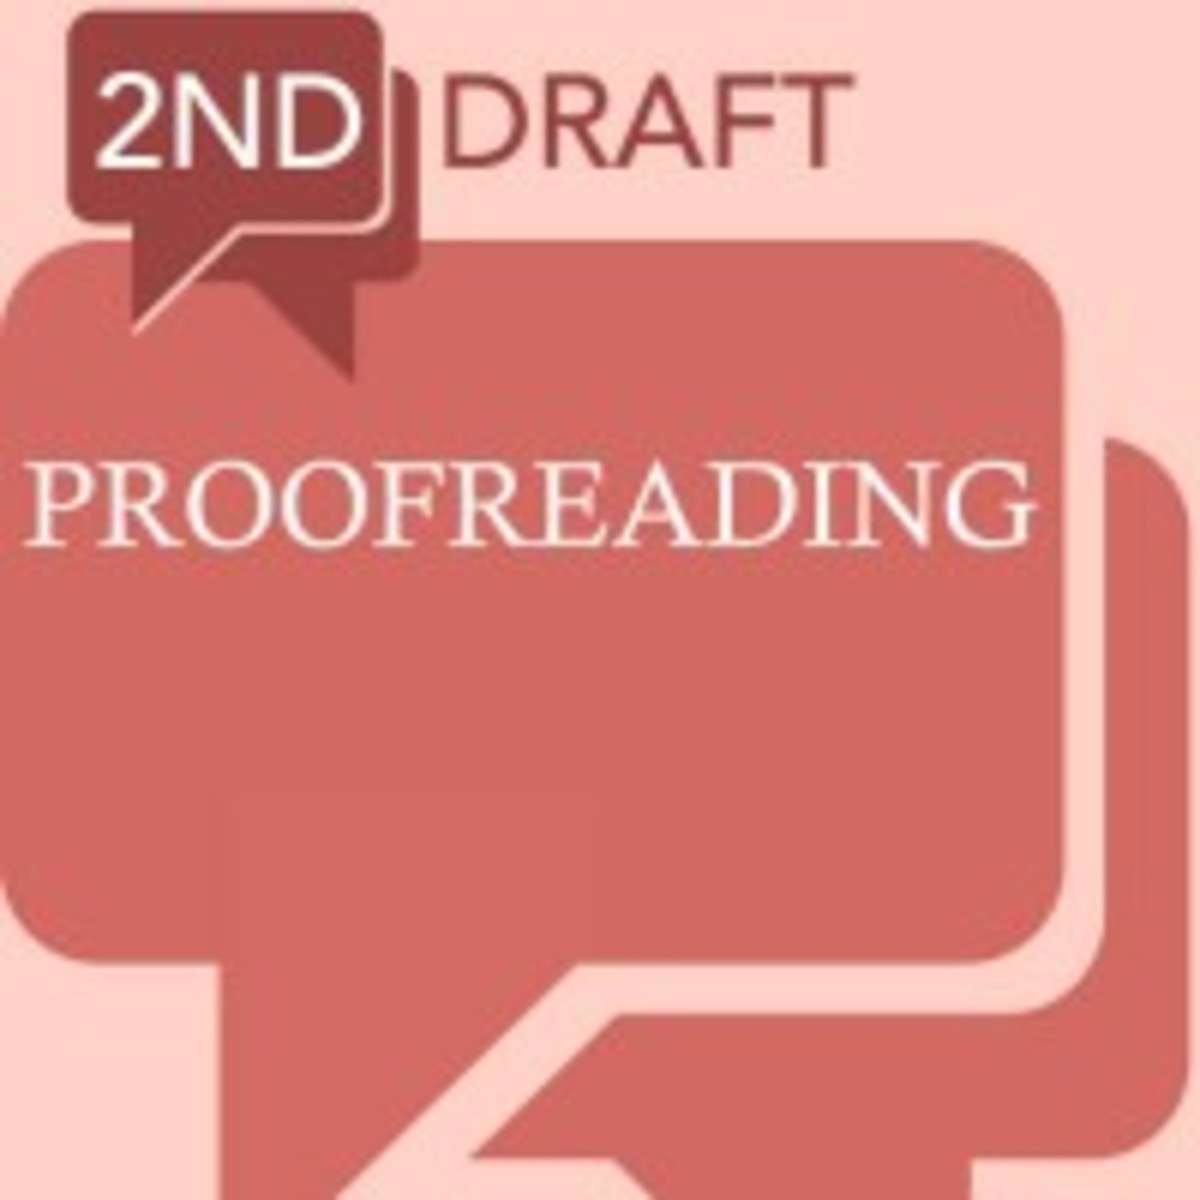 2nd-draft-proofreading